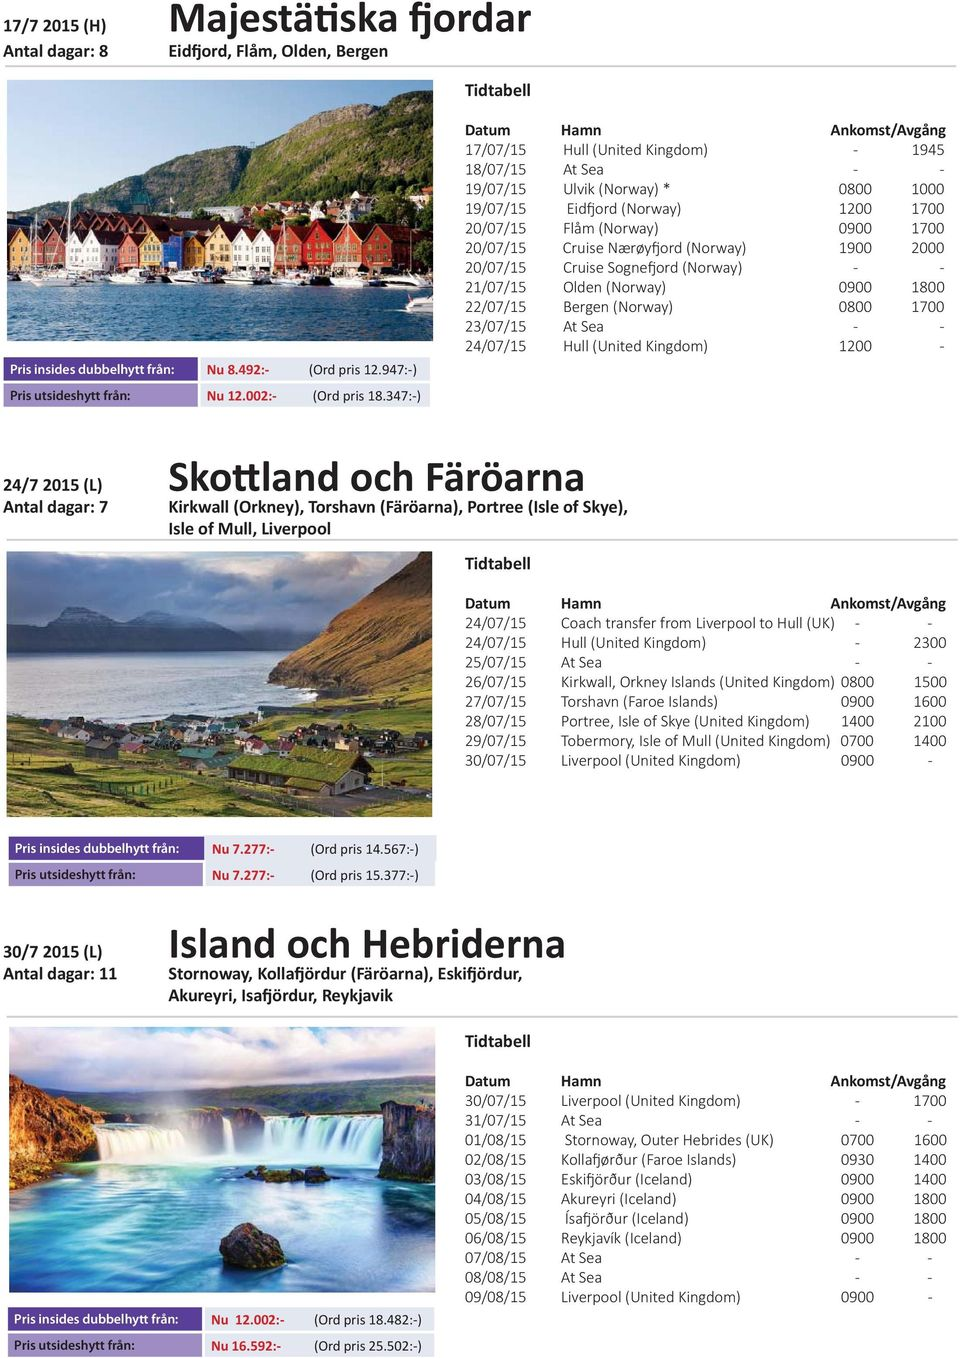 (Norway) 1900 2000 20/07/15 Cruise Sogne ord (Norway) - - 21/07/15 Olden (Norway) 0900 1800 22/07/15 Bergen (Norway) 0800 1700 23/07/15 At Sea - - 24/07/15 Hull (United Kingdom) 1200-24/7 2015 (L)